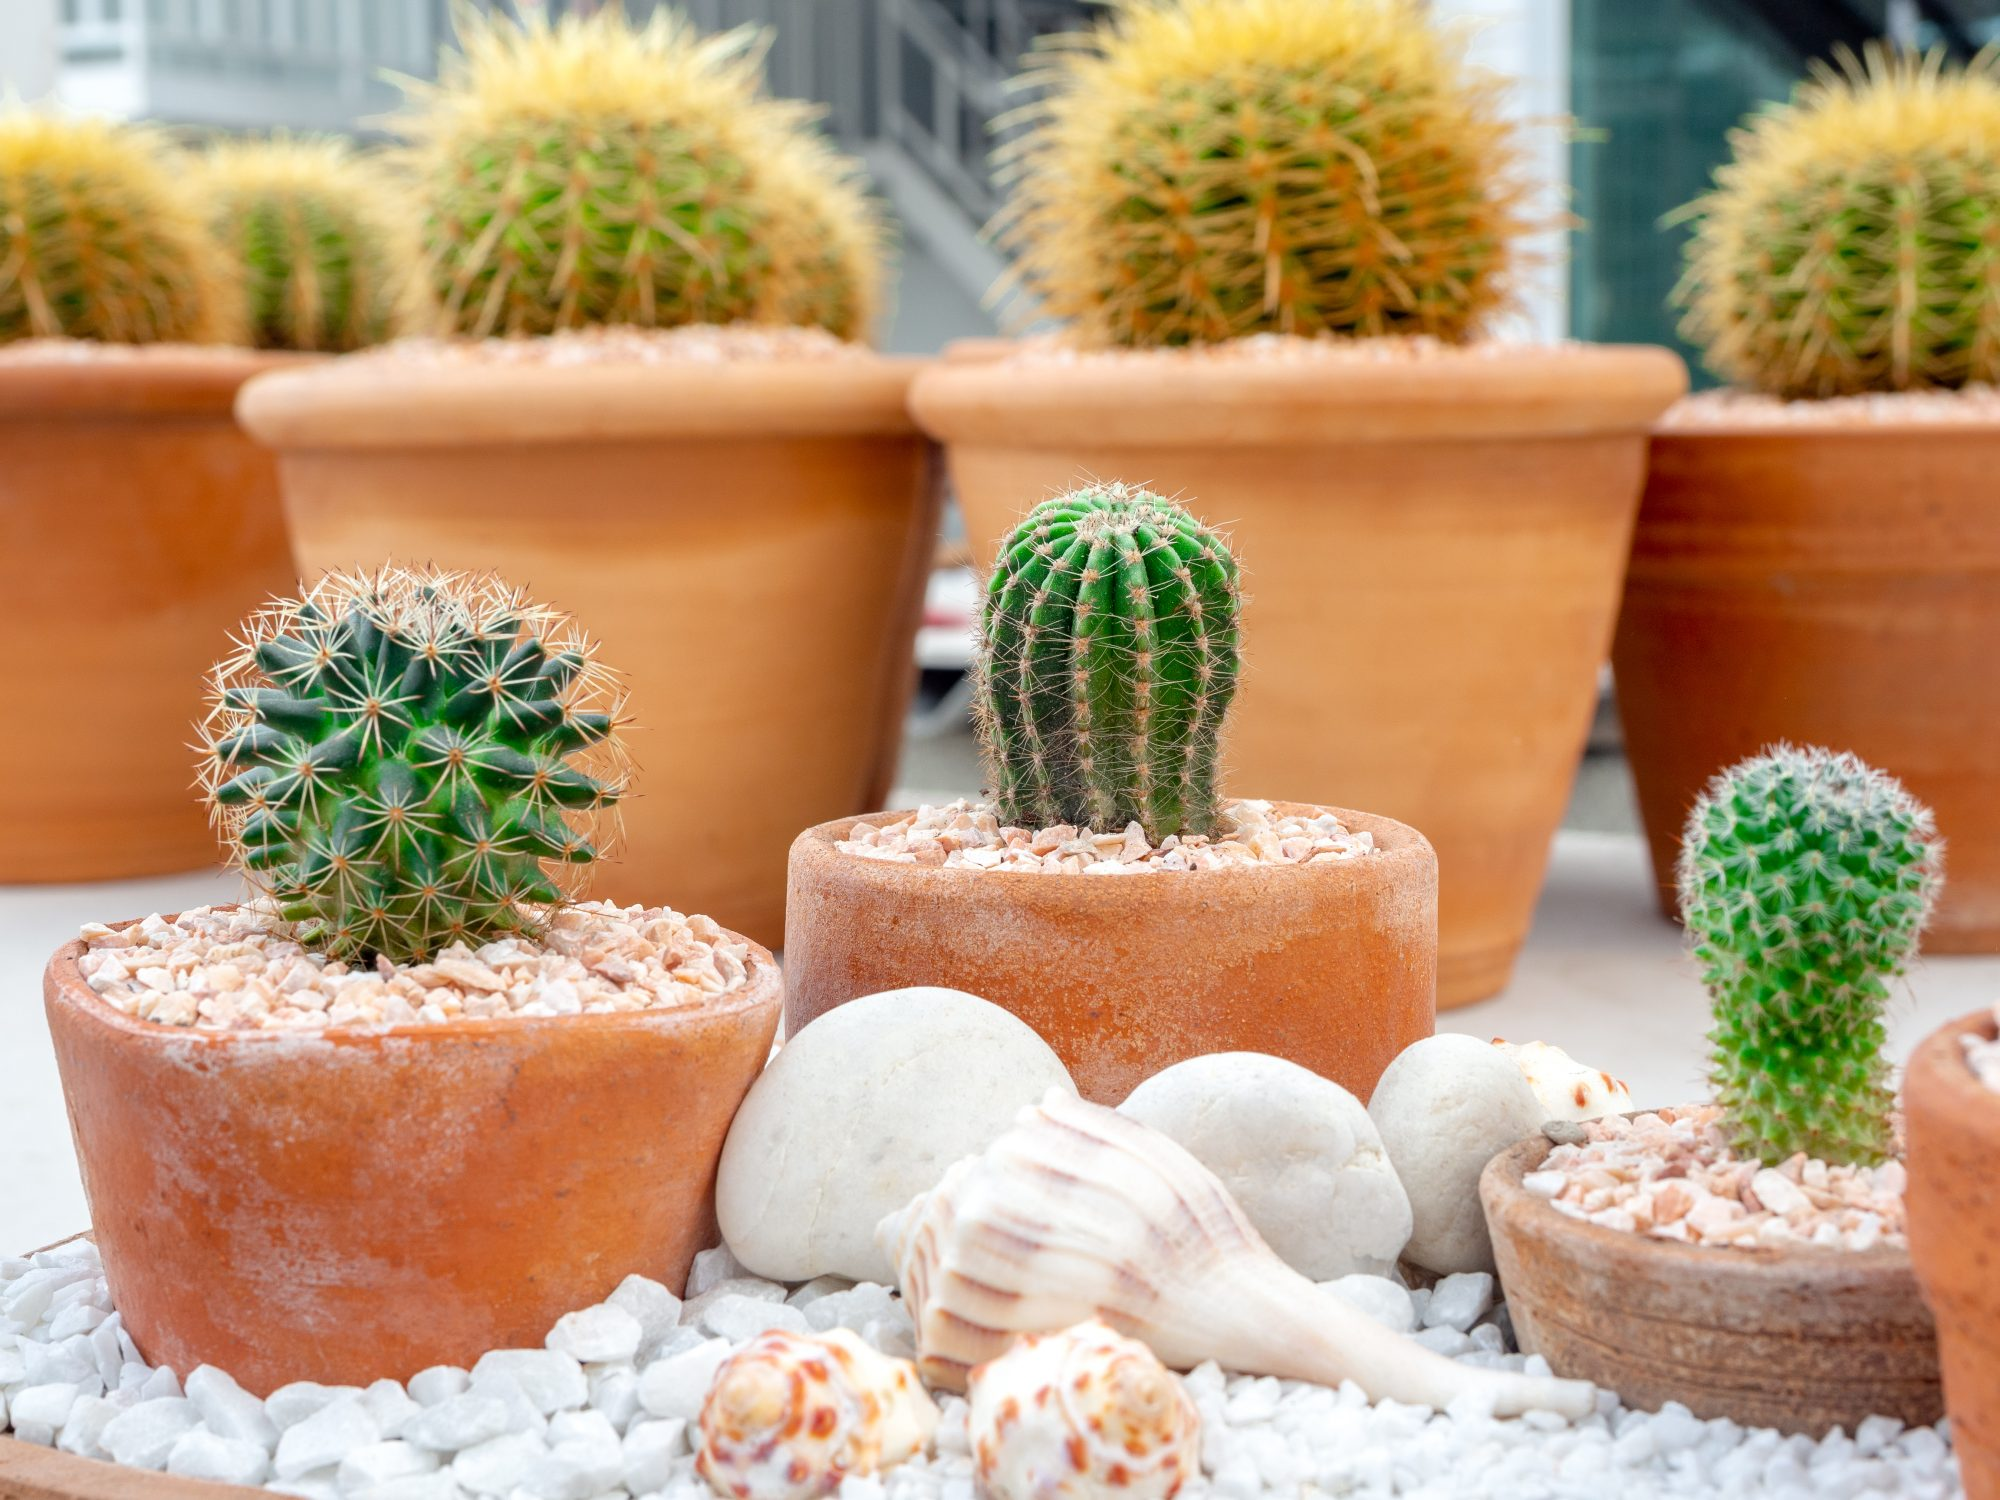 Green fresh cactus in pot with shells